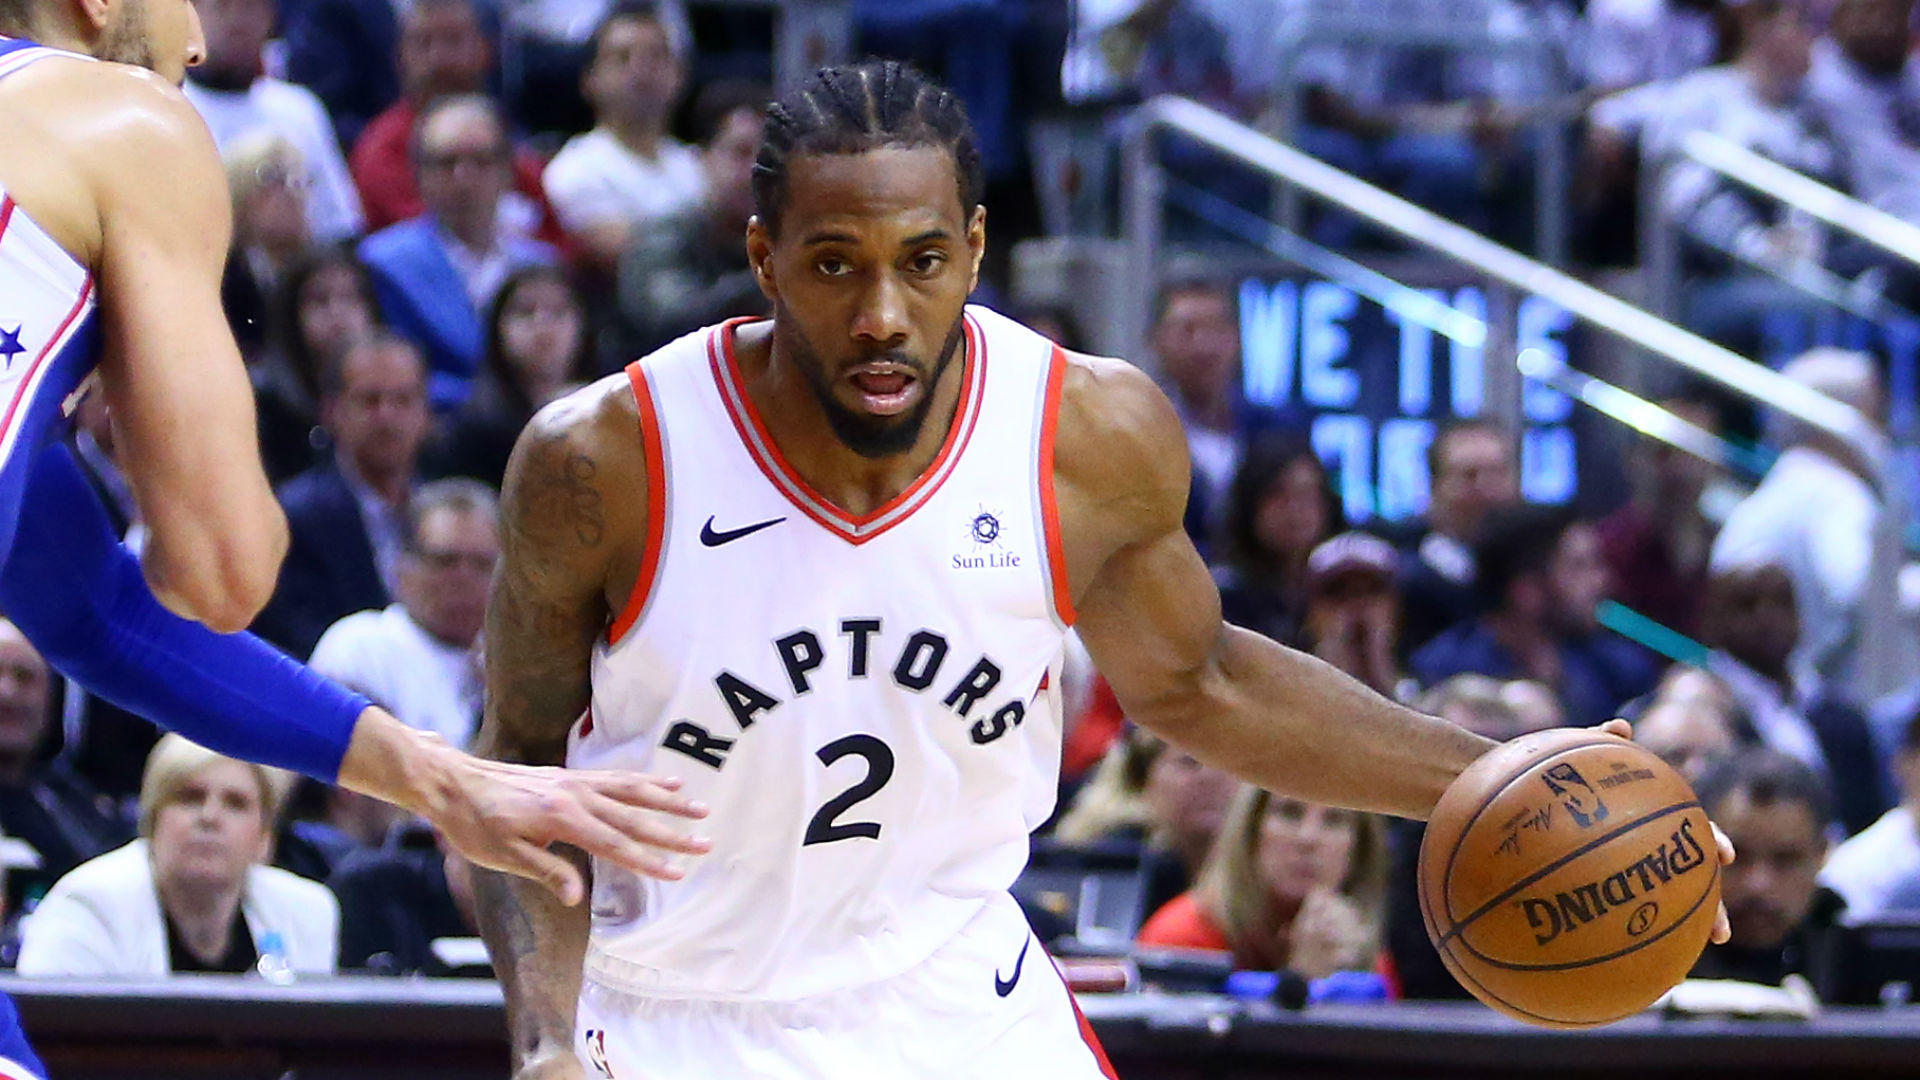 NBA playoffs 2019: Spurs legend David Robinson happy to see Kawhi Leonard succeeding